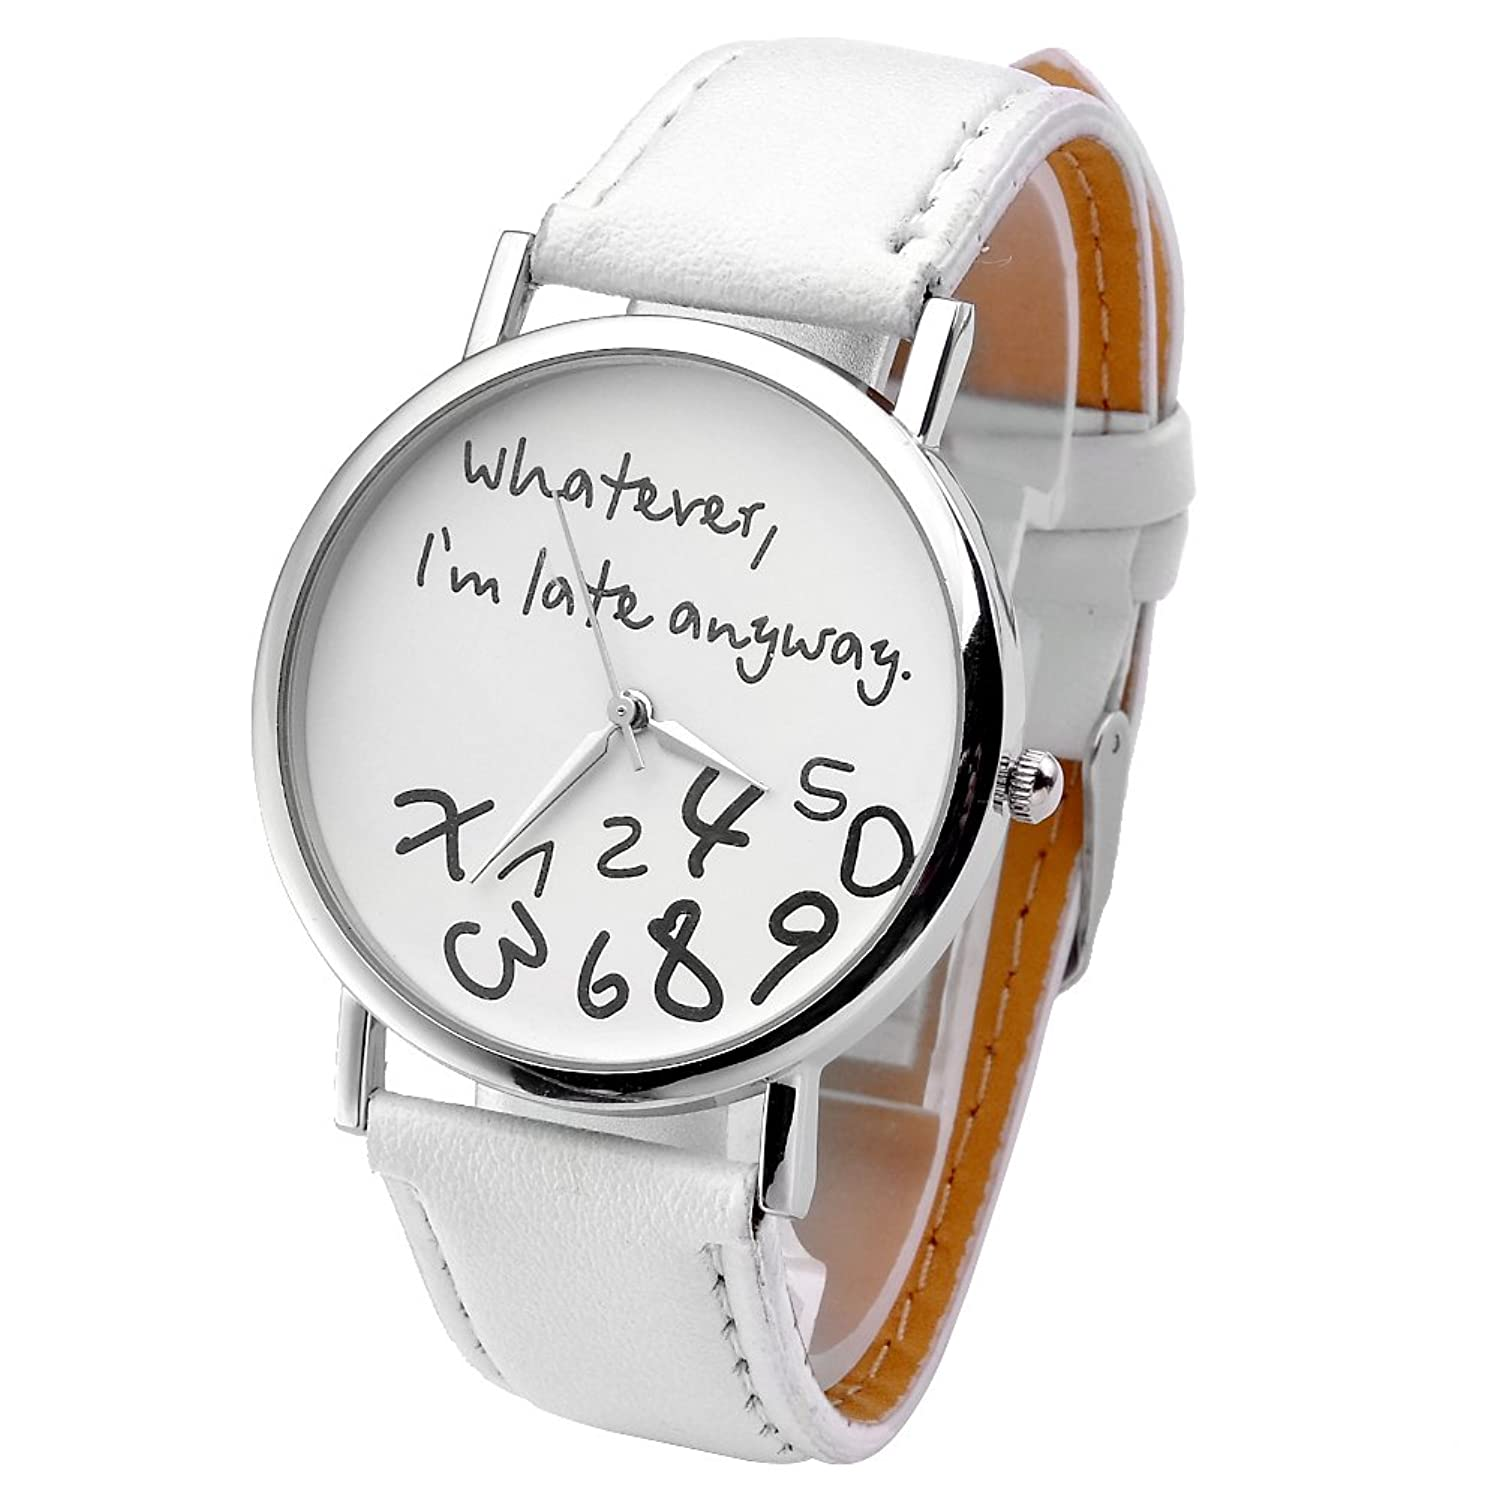 abbastanza JSDDE Orologi , Vintage donna moda'What ever, I 'm late Anyway  DL88